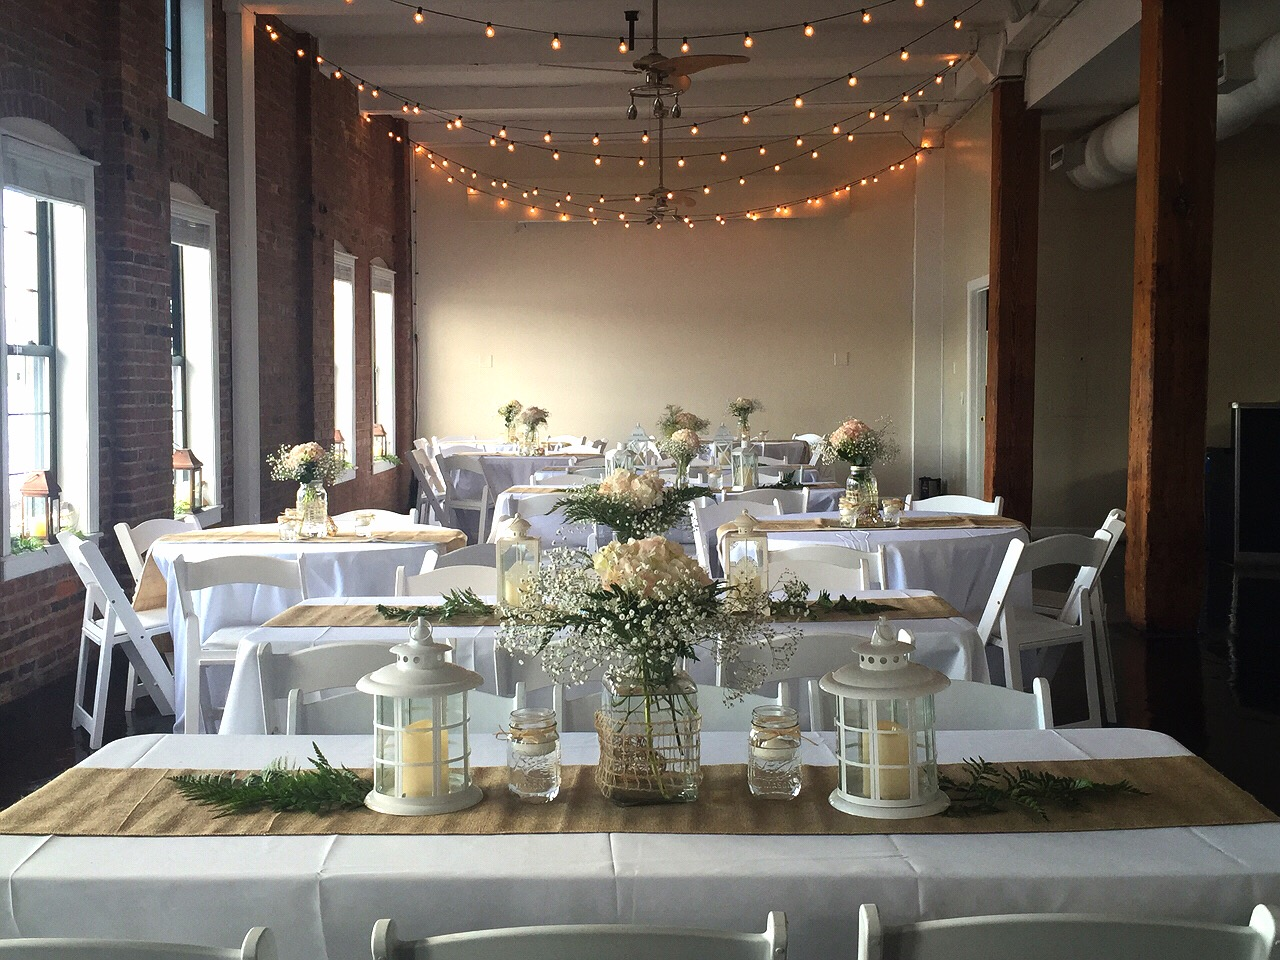 The Layout Of The Room Included Both Round Tables And Rectangular Tables  For Guests, Cocktail Tables By The Bar, A Glass Table For Decorations, ...